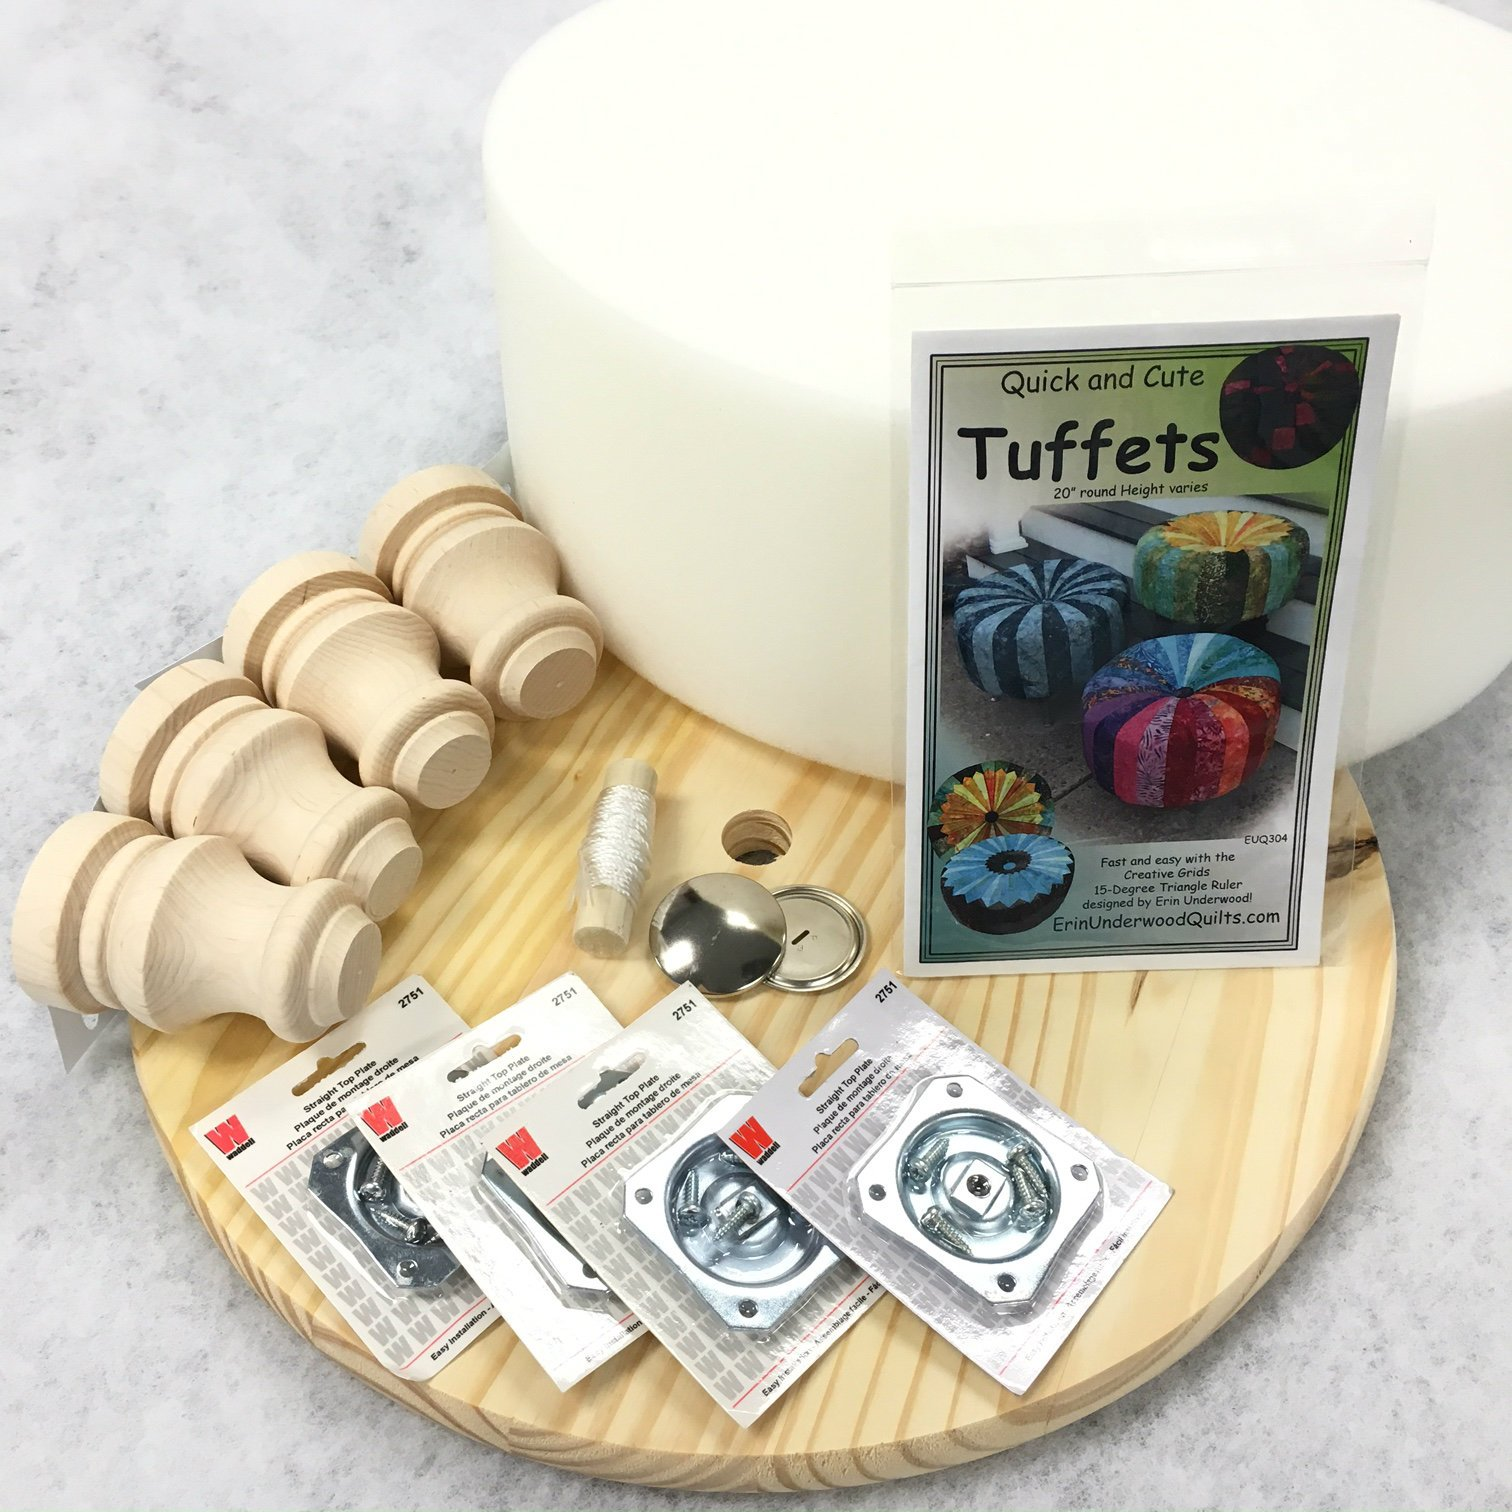 Quick and Cute Tuffet Kit